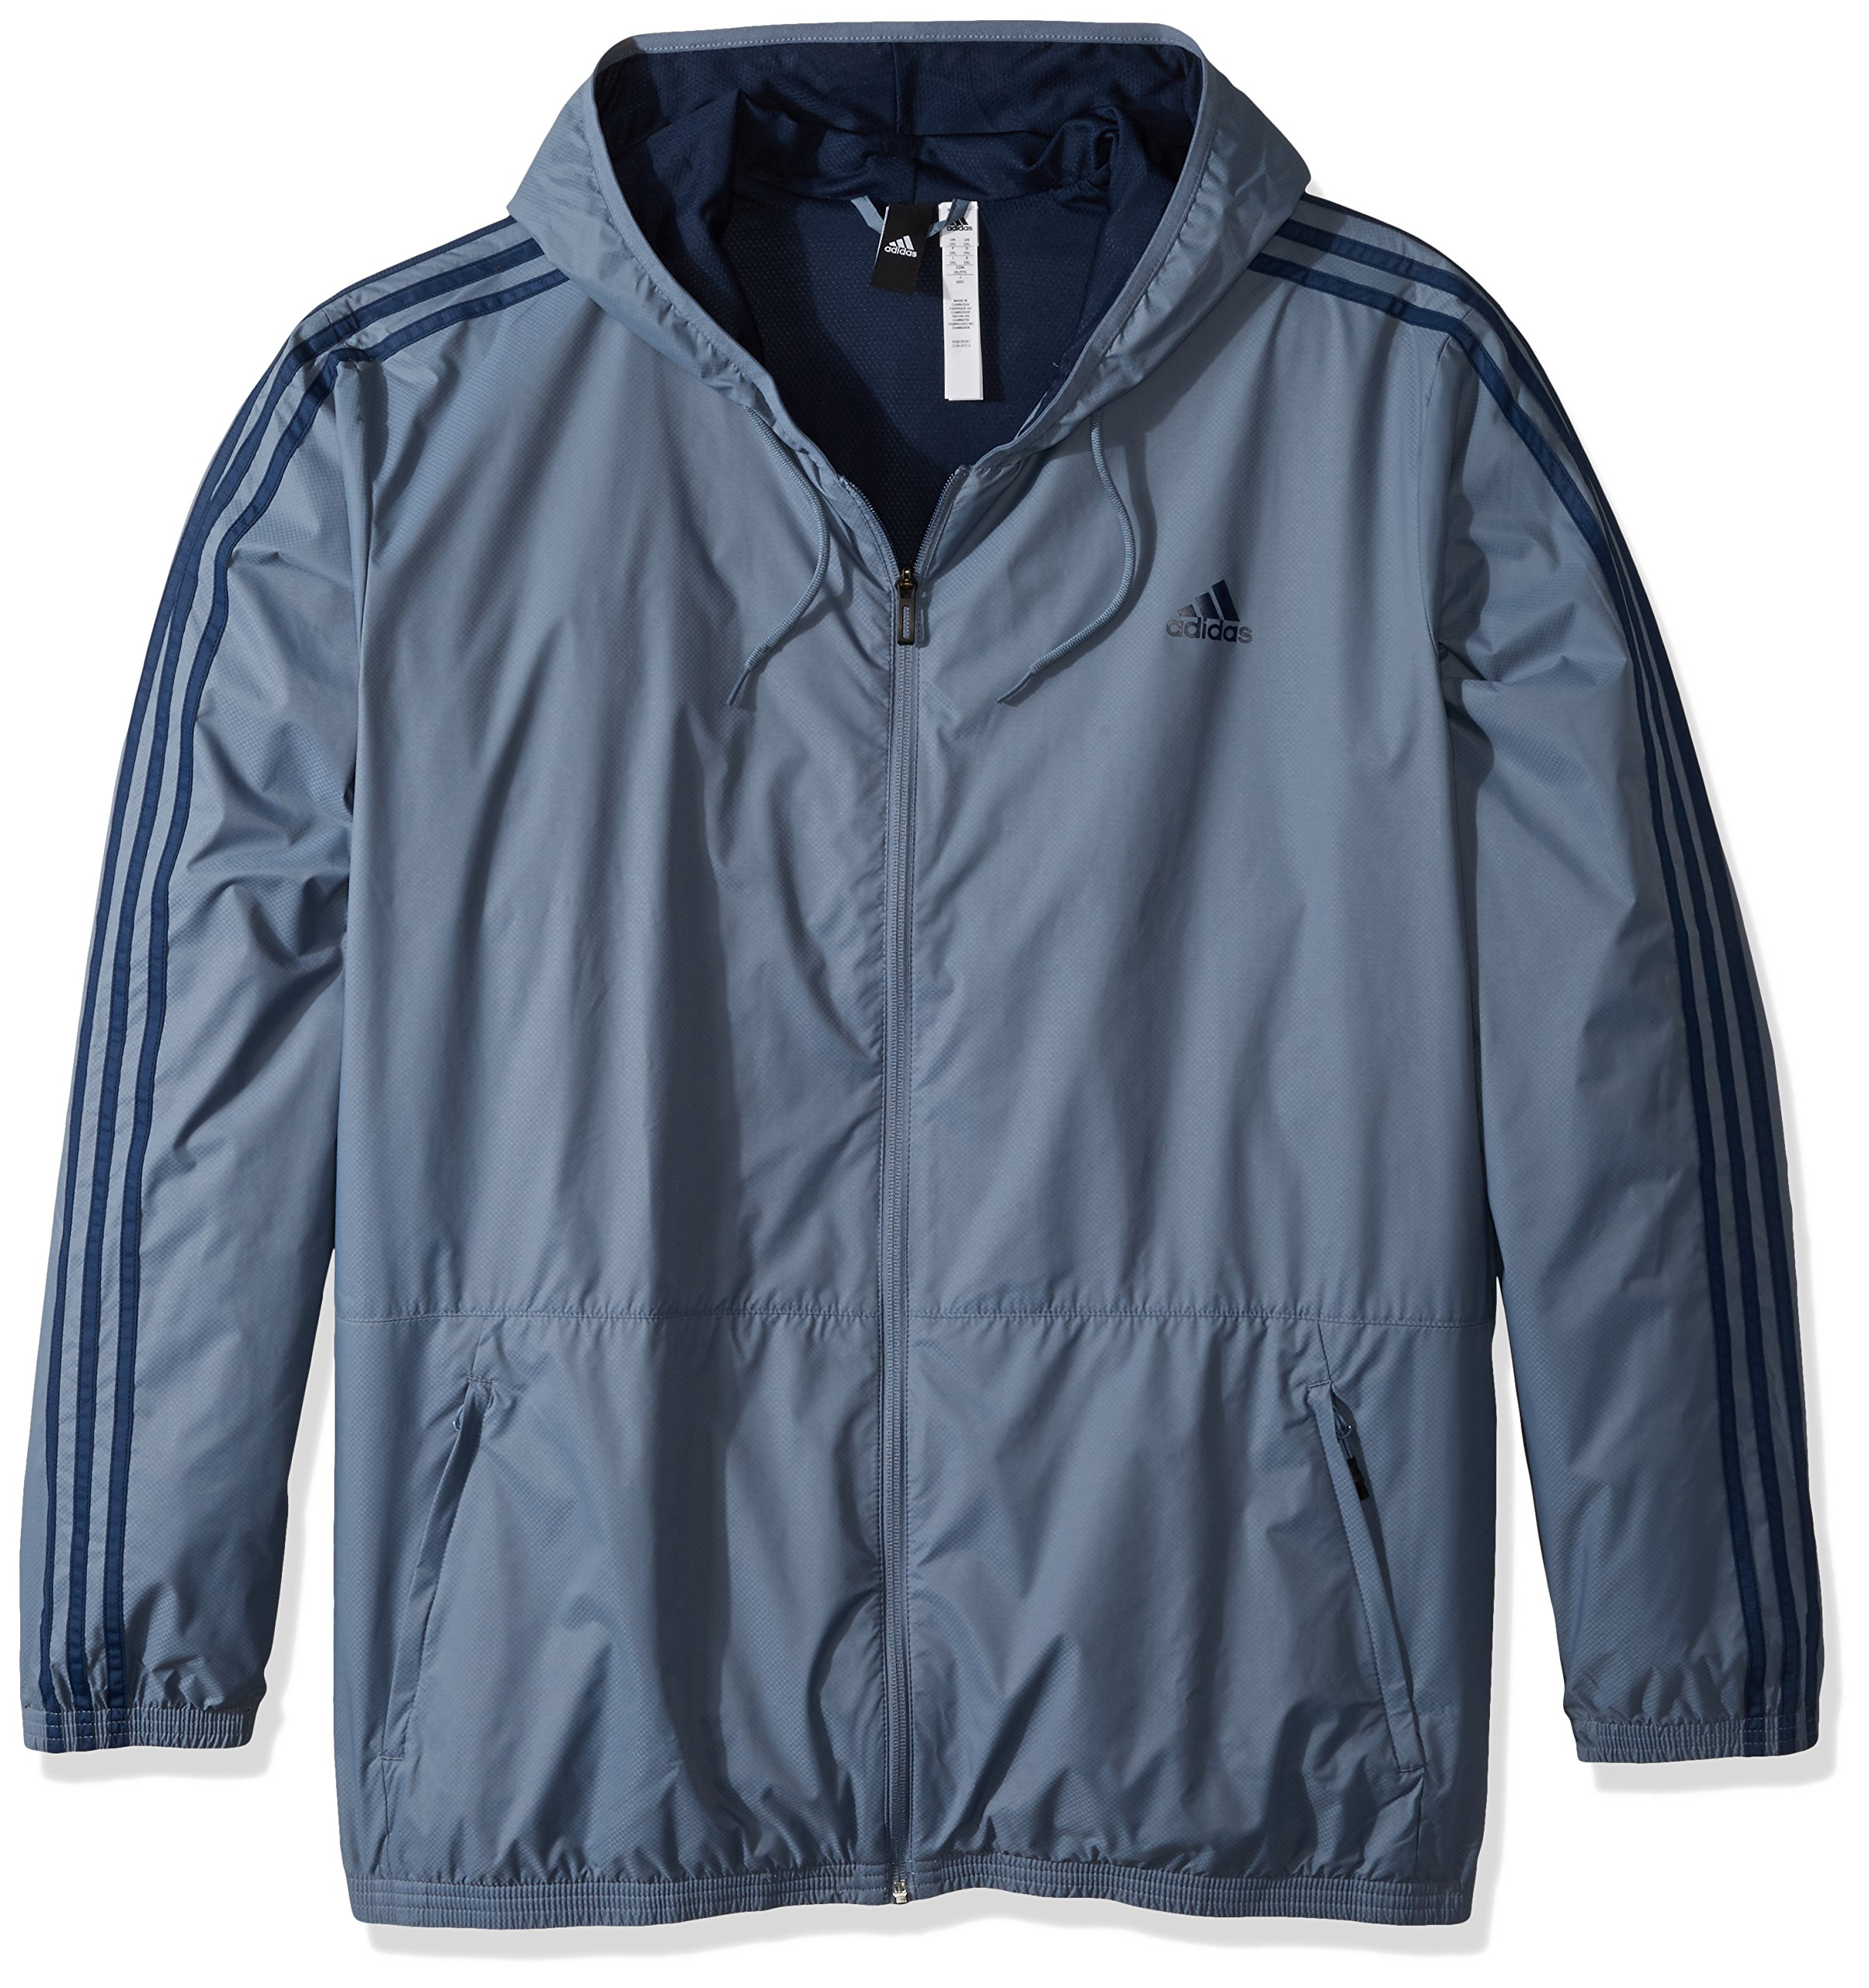 adidas Men's Essentials Wind Jacket, Raw Steel/Collegiate Navy, Medium by adidas